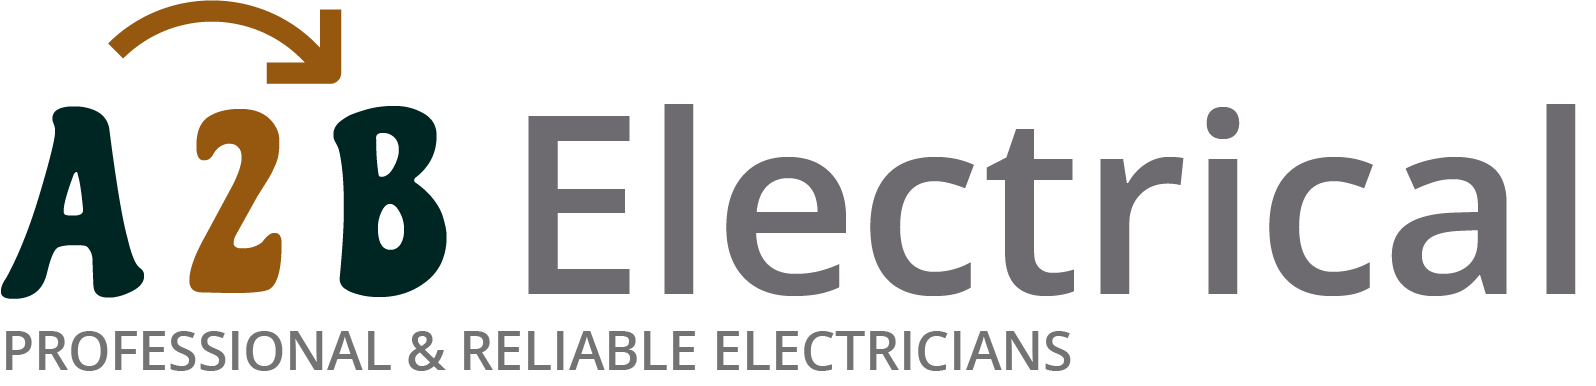 If you have electrical wiring problems in Pitsea, we can provide an electrician to have a look for you.